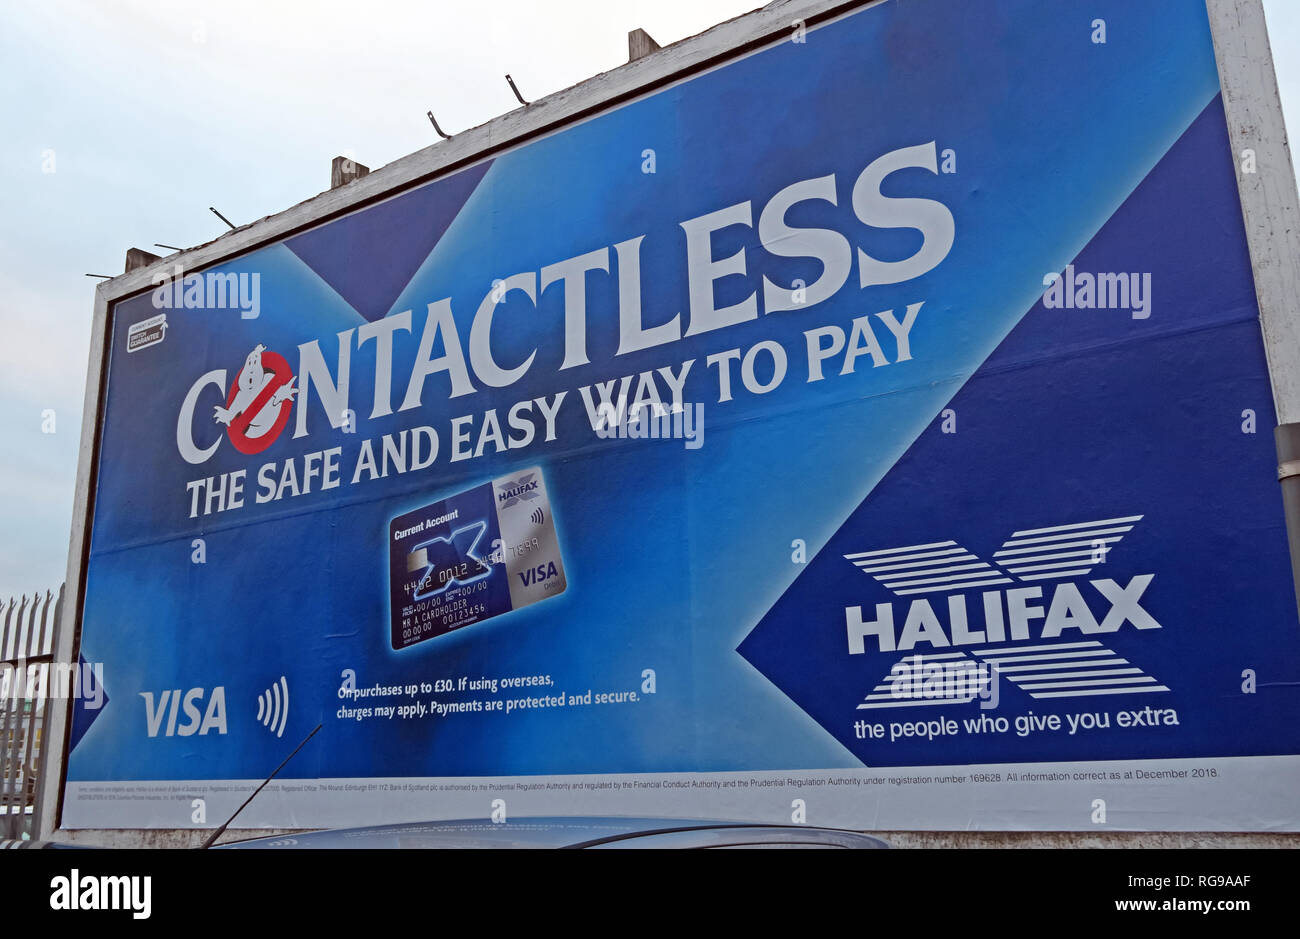 Halifax Contactless card billboard advert, The Safe and easy way To Pay, Warrington, Cheshire, UK - Stock Image